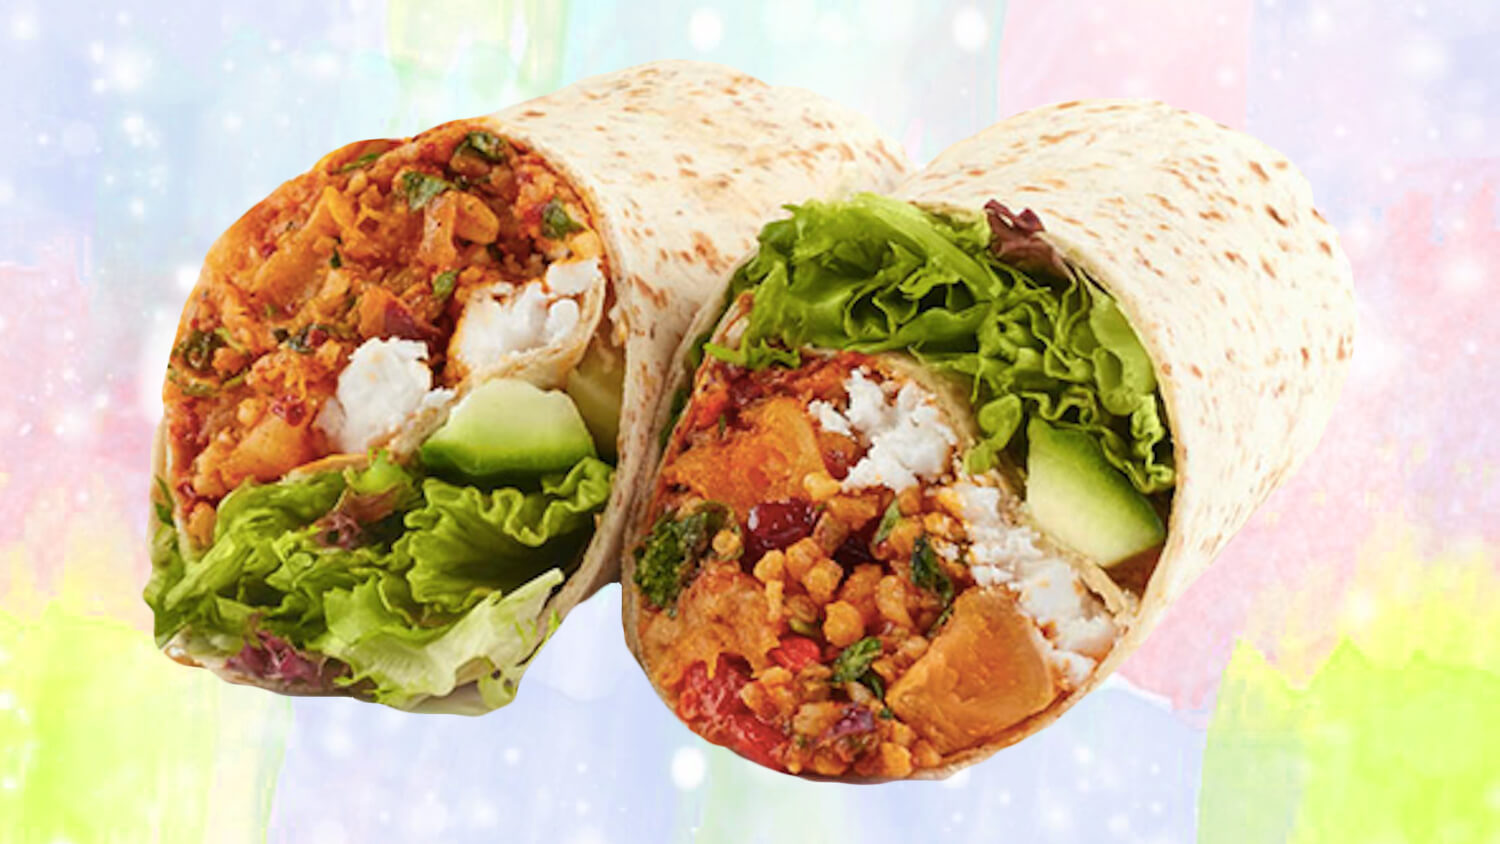 Crussh Fit Food & Juice Bars Launches Vegan Feta Cheese Wraps In All 20 UK Locations